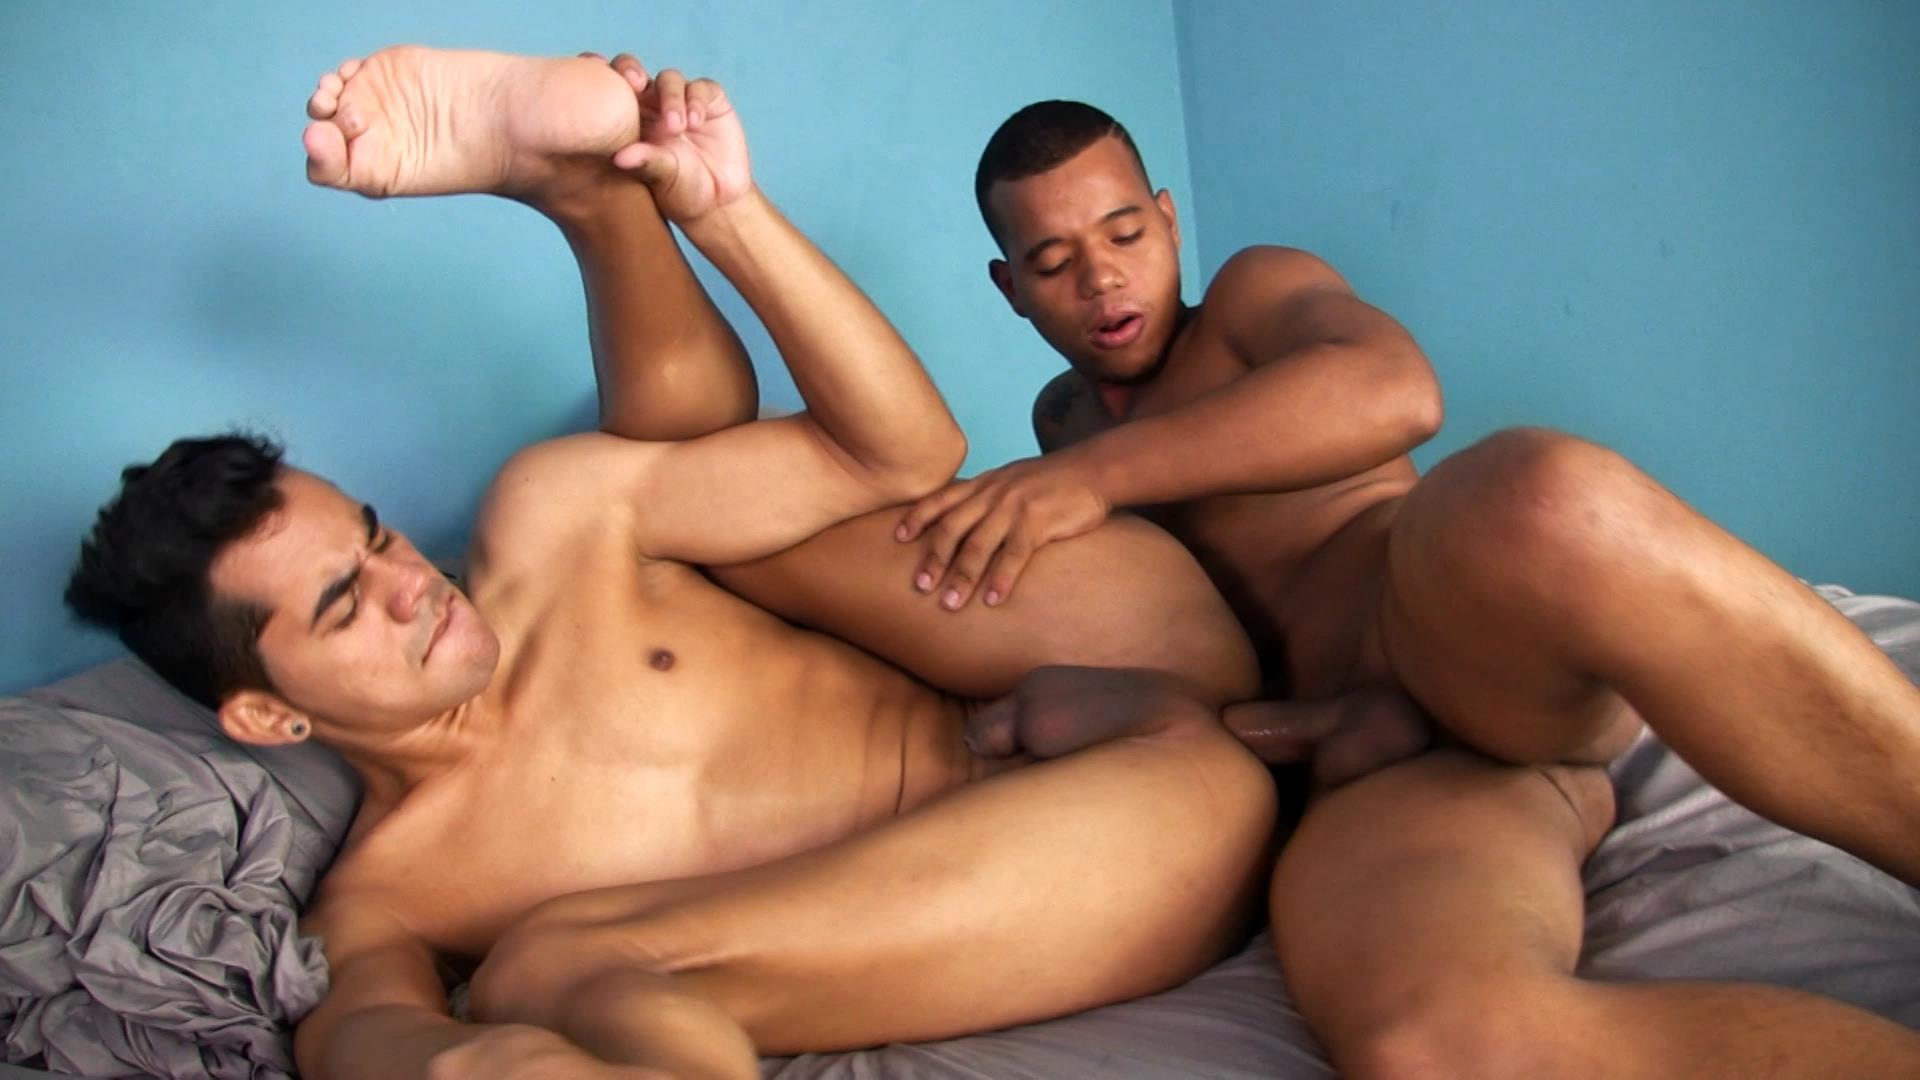 Amateur gay circumcised dicks xxx he gets 5